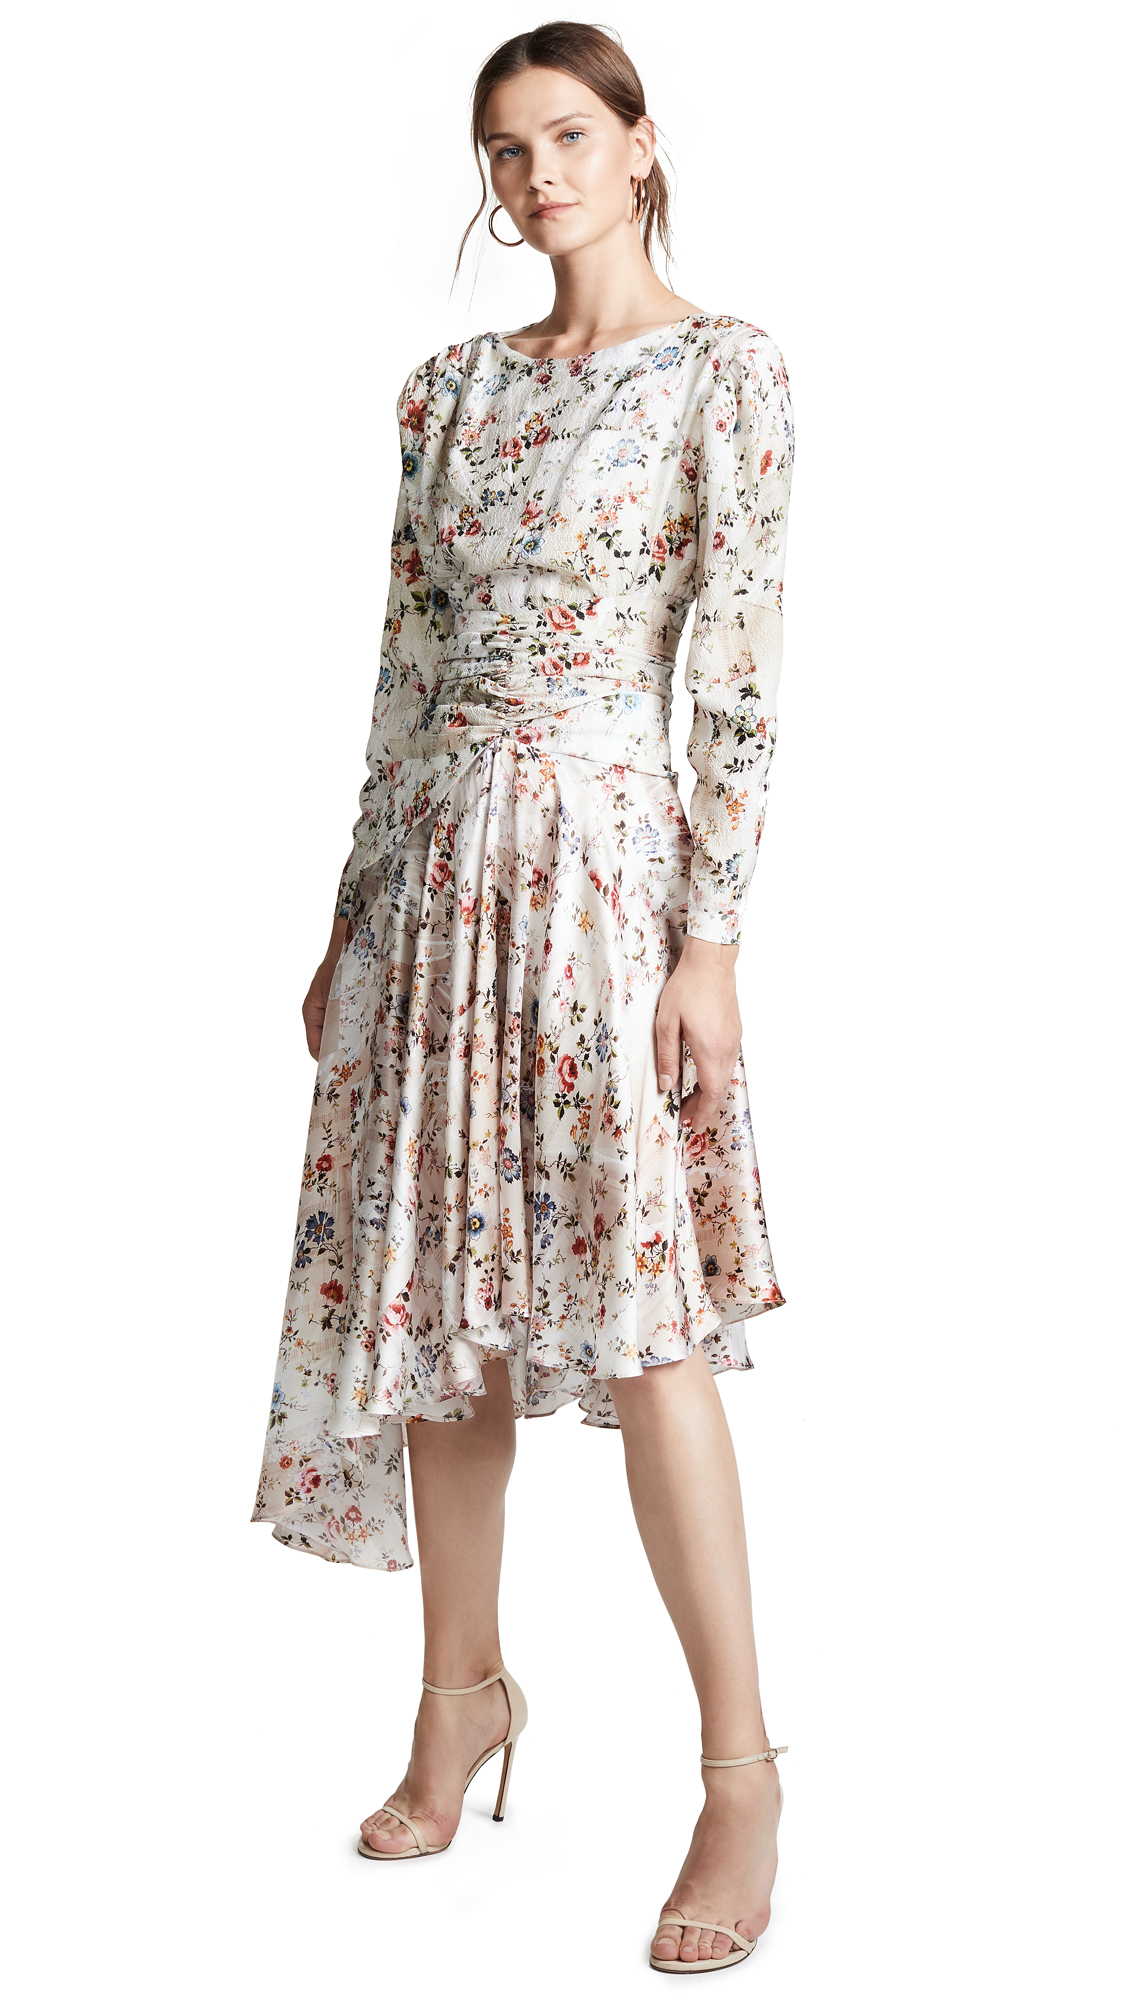 Preen By Thornton Bregazzi Kay Dress In Floral/Off White